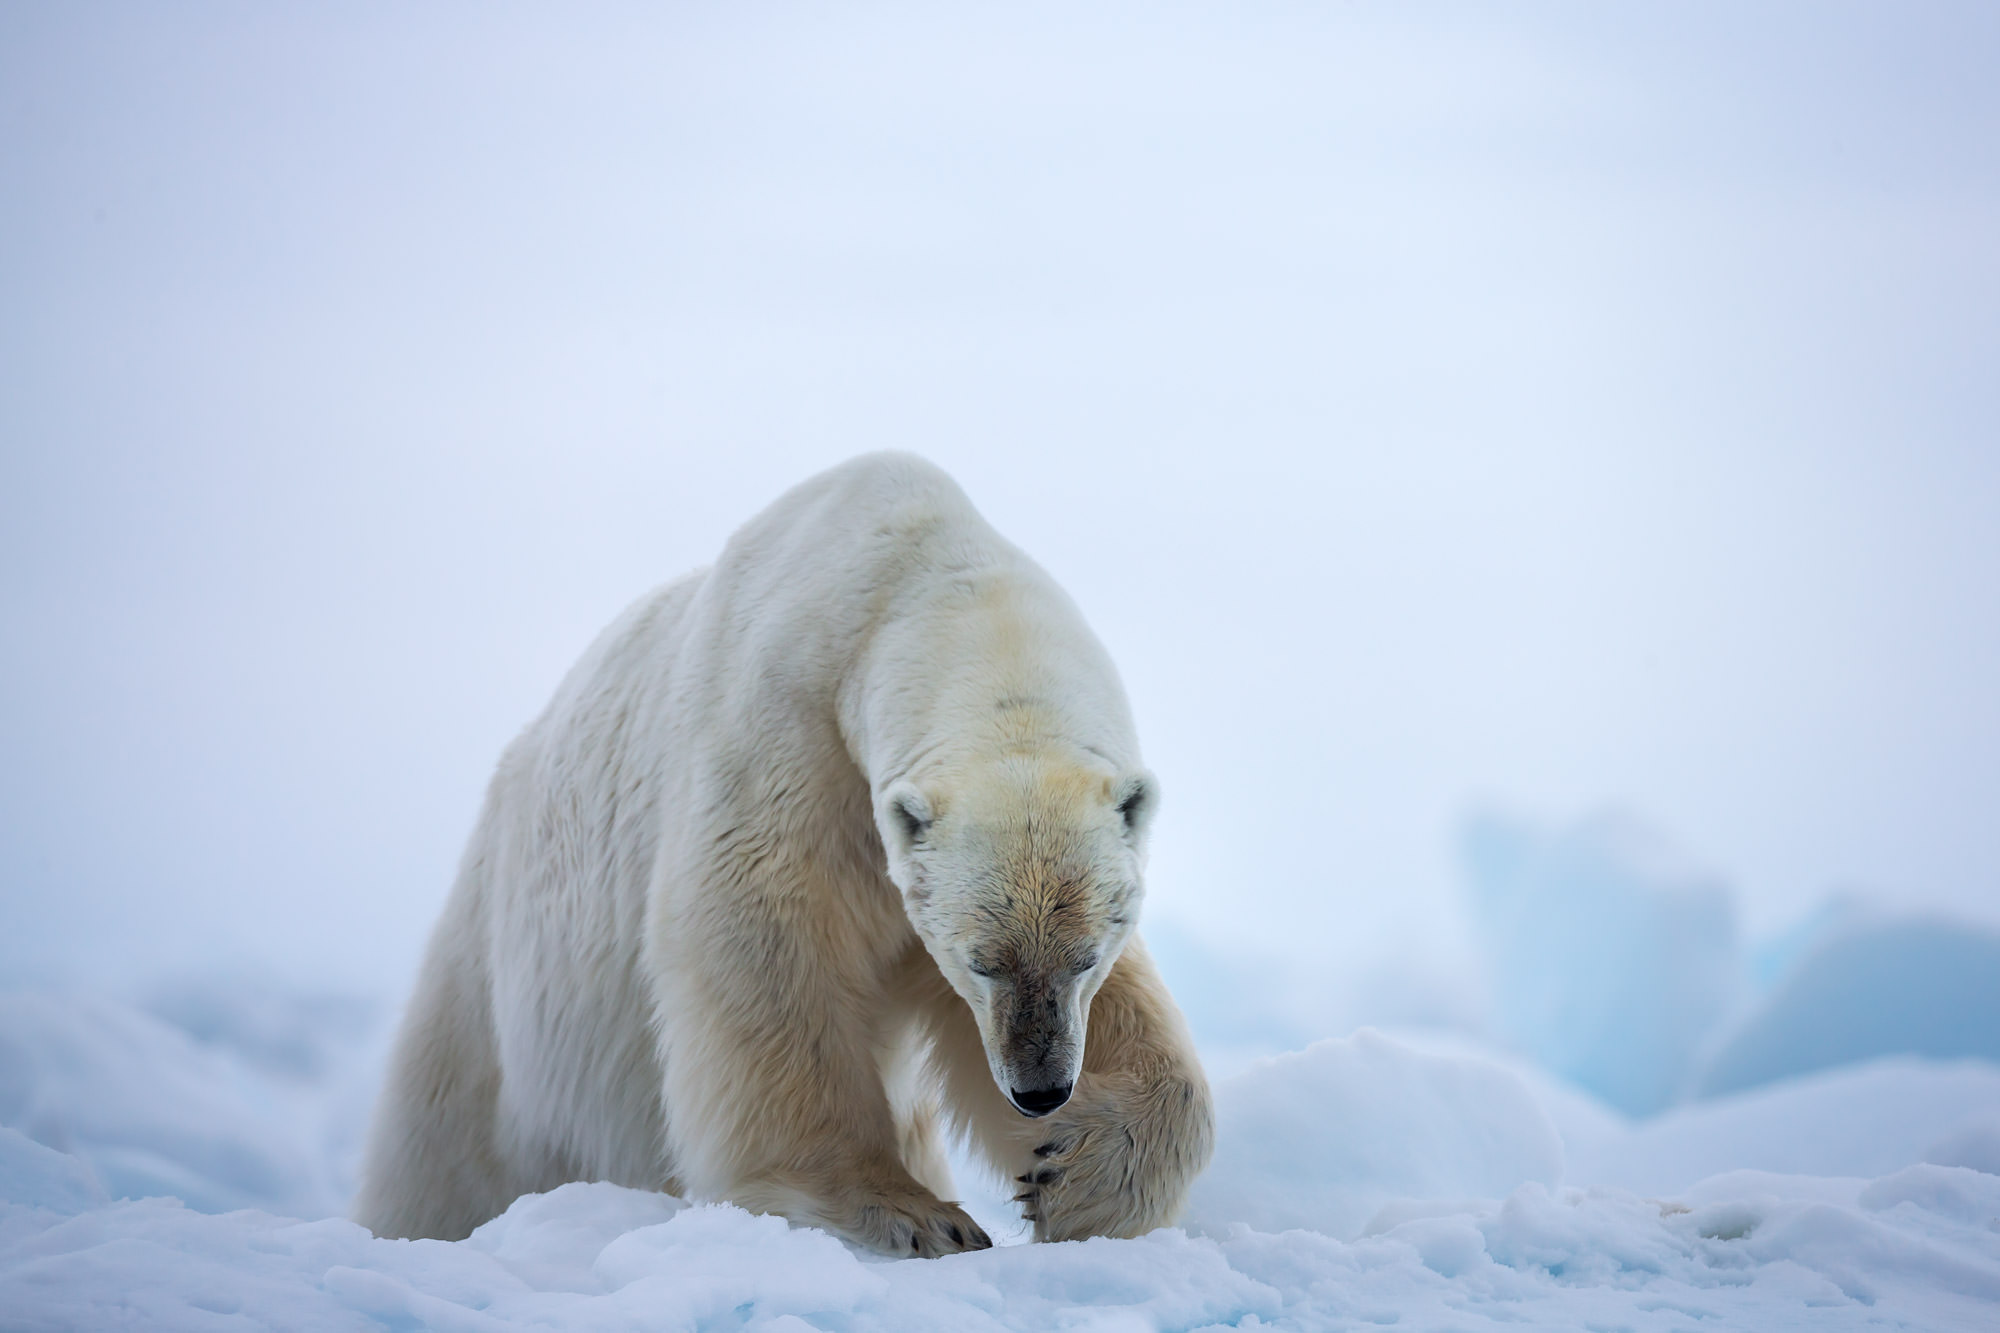 Bear, Polar Bear, Norway, Spitsbergen, limited edition, photograph. fine art, wildlife, photo